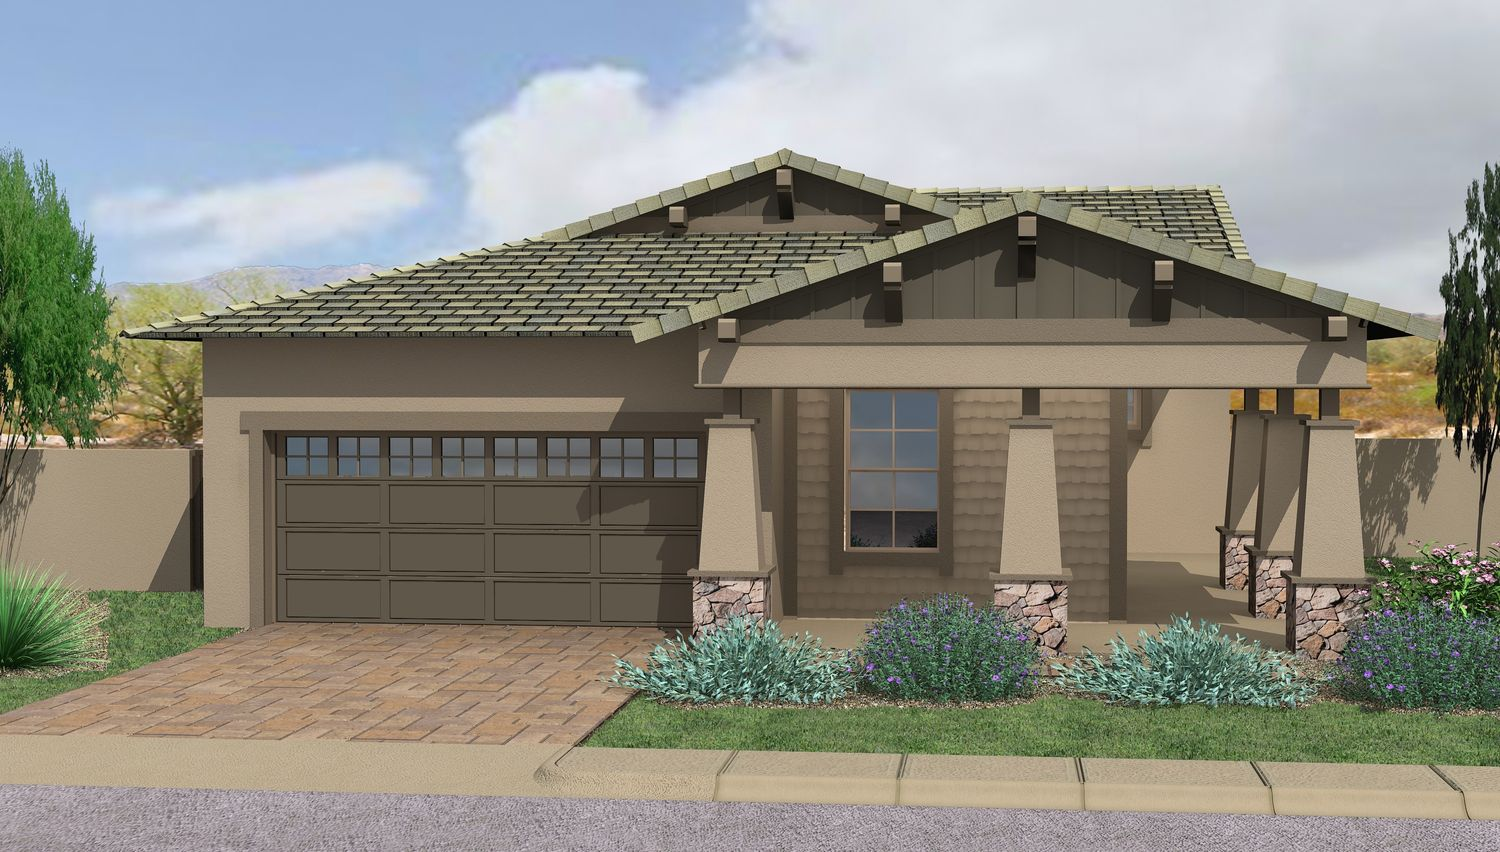 Rosewood grove new homes in queen creek az by rosewood homes for Rosewood home builders